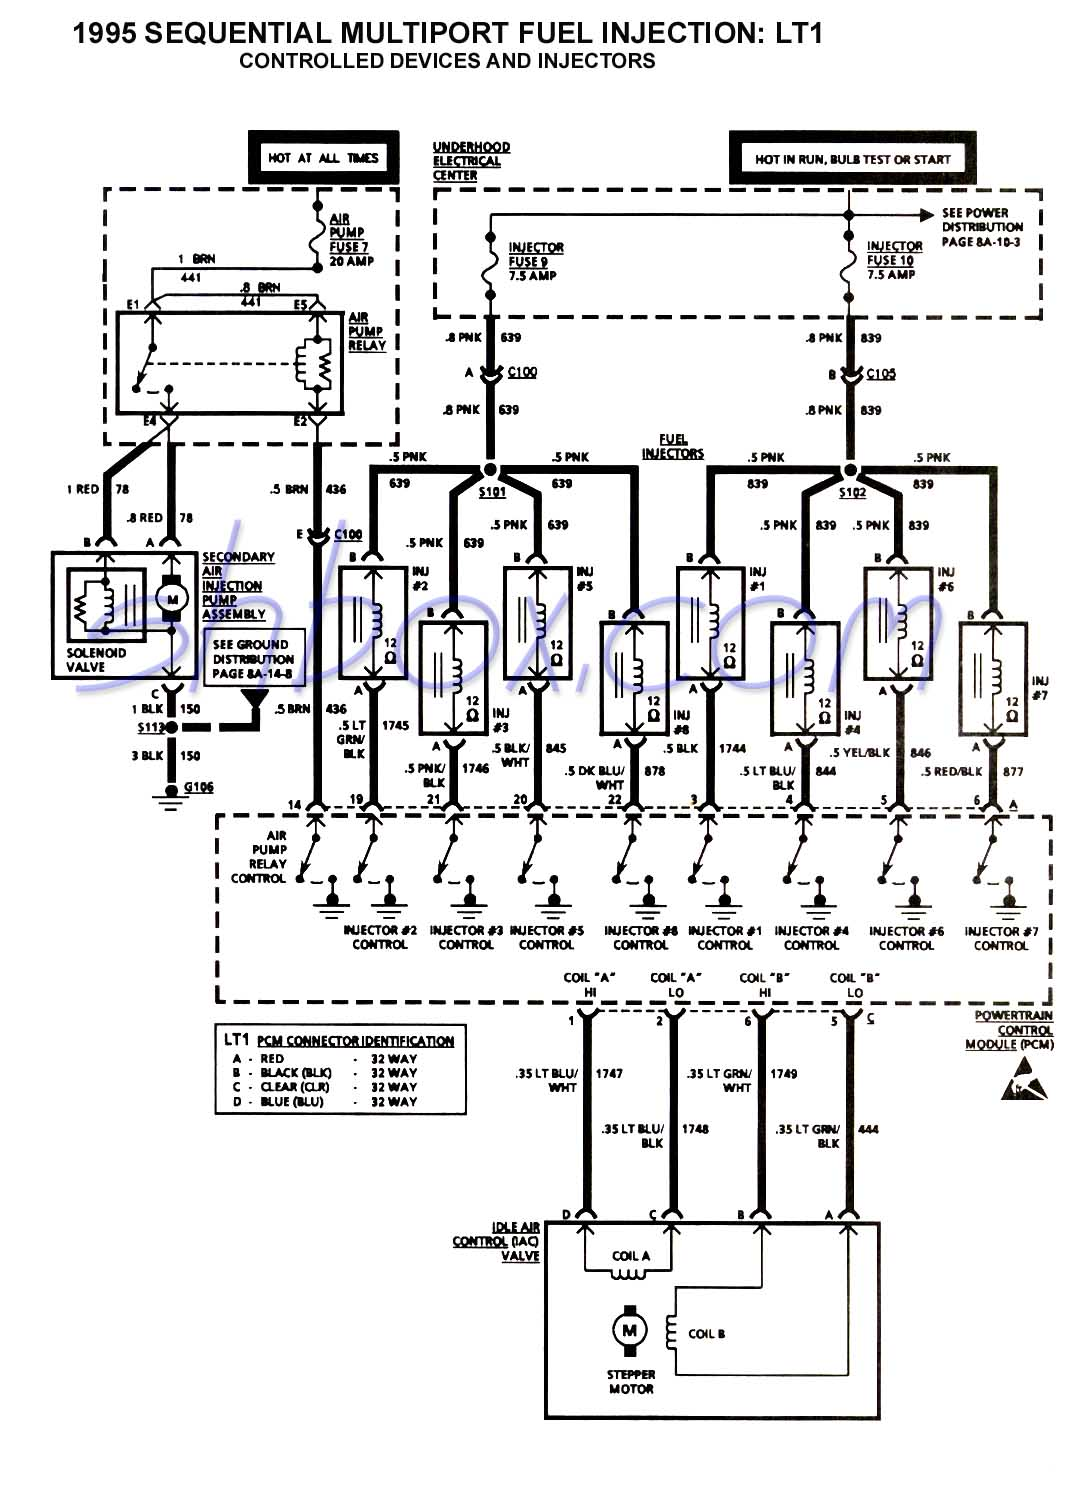 smfi_devices_injectors 2000 impala bcm wiring schematic wiring diagram data